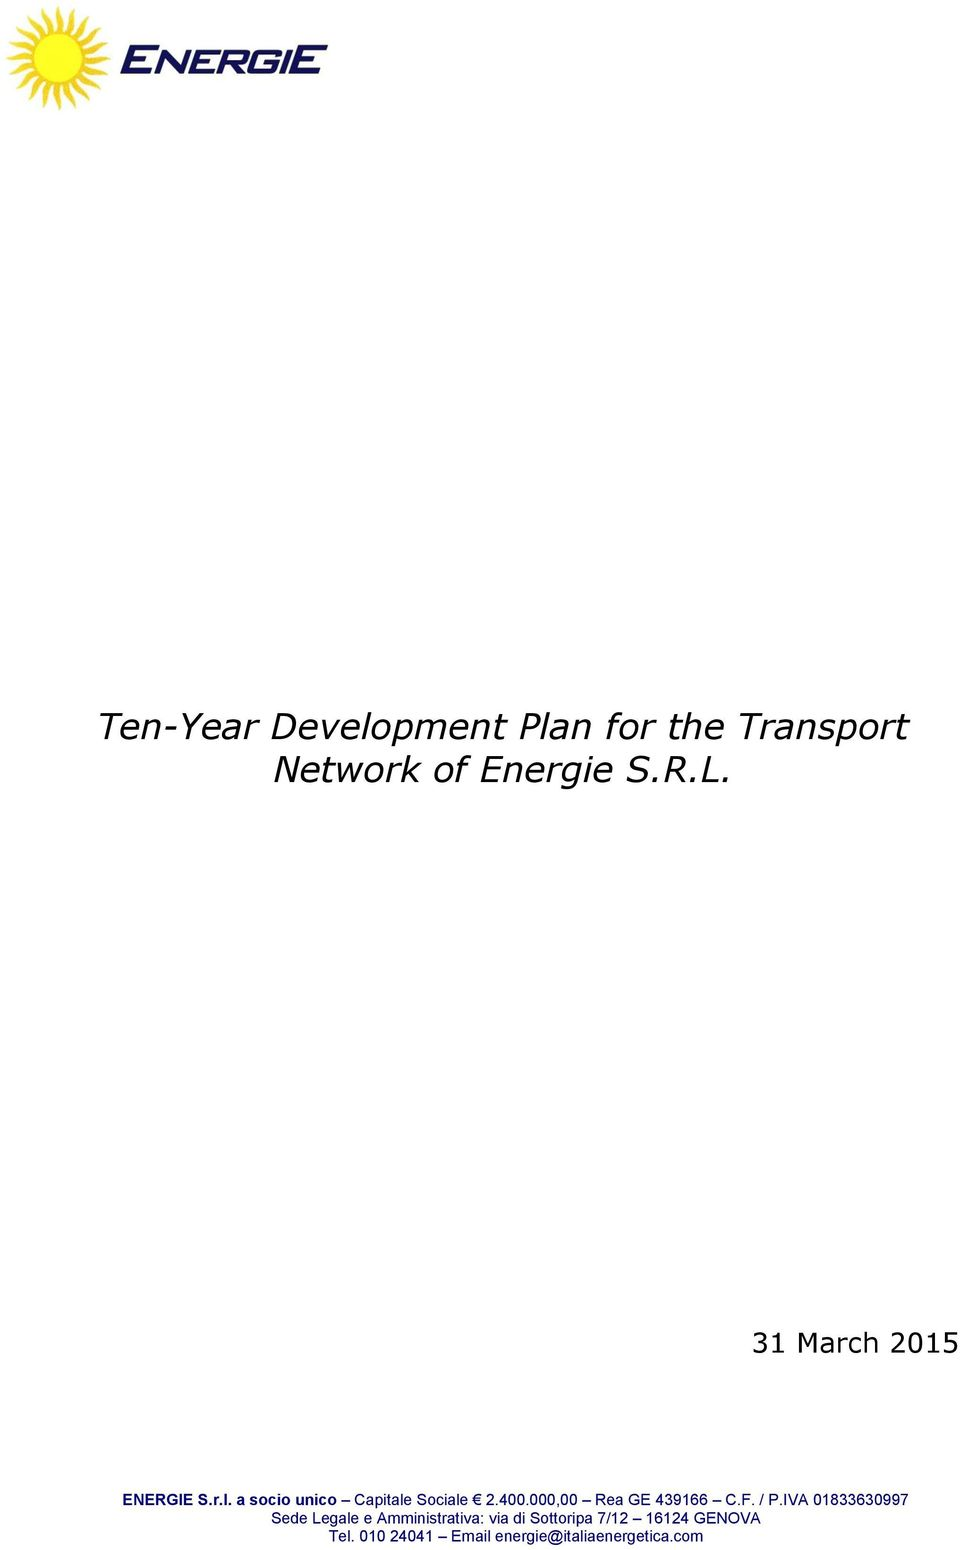 Transport Network of